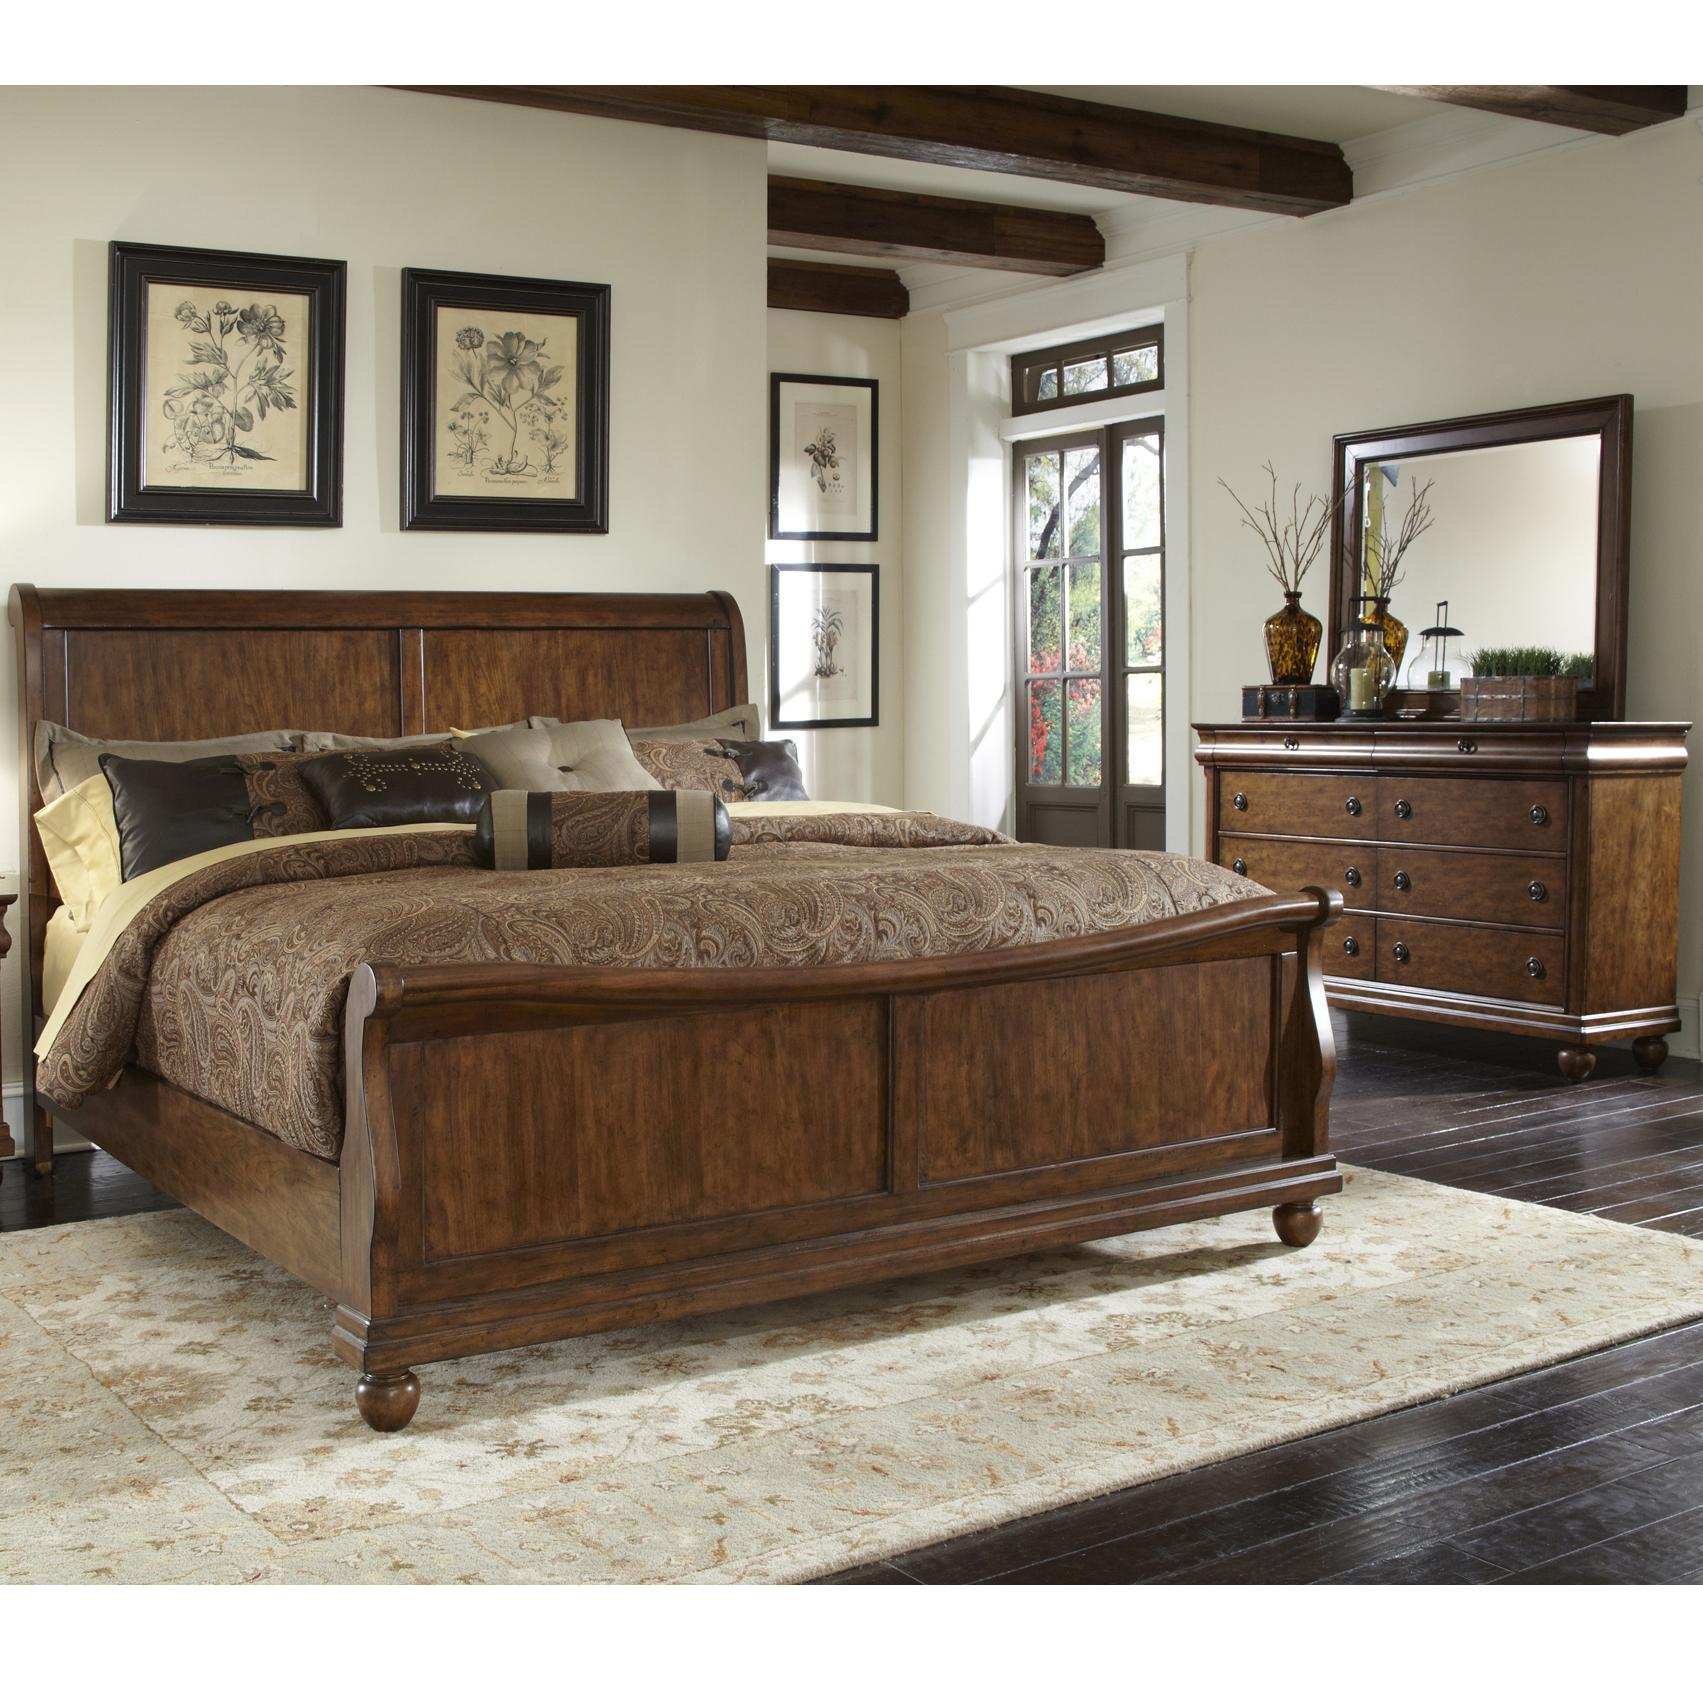 Bedroom Set York Pa Picture Ideas With Three Bedroom House Design In